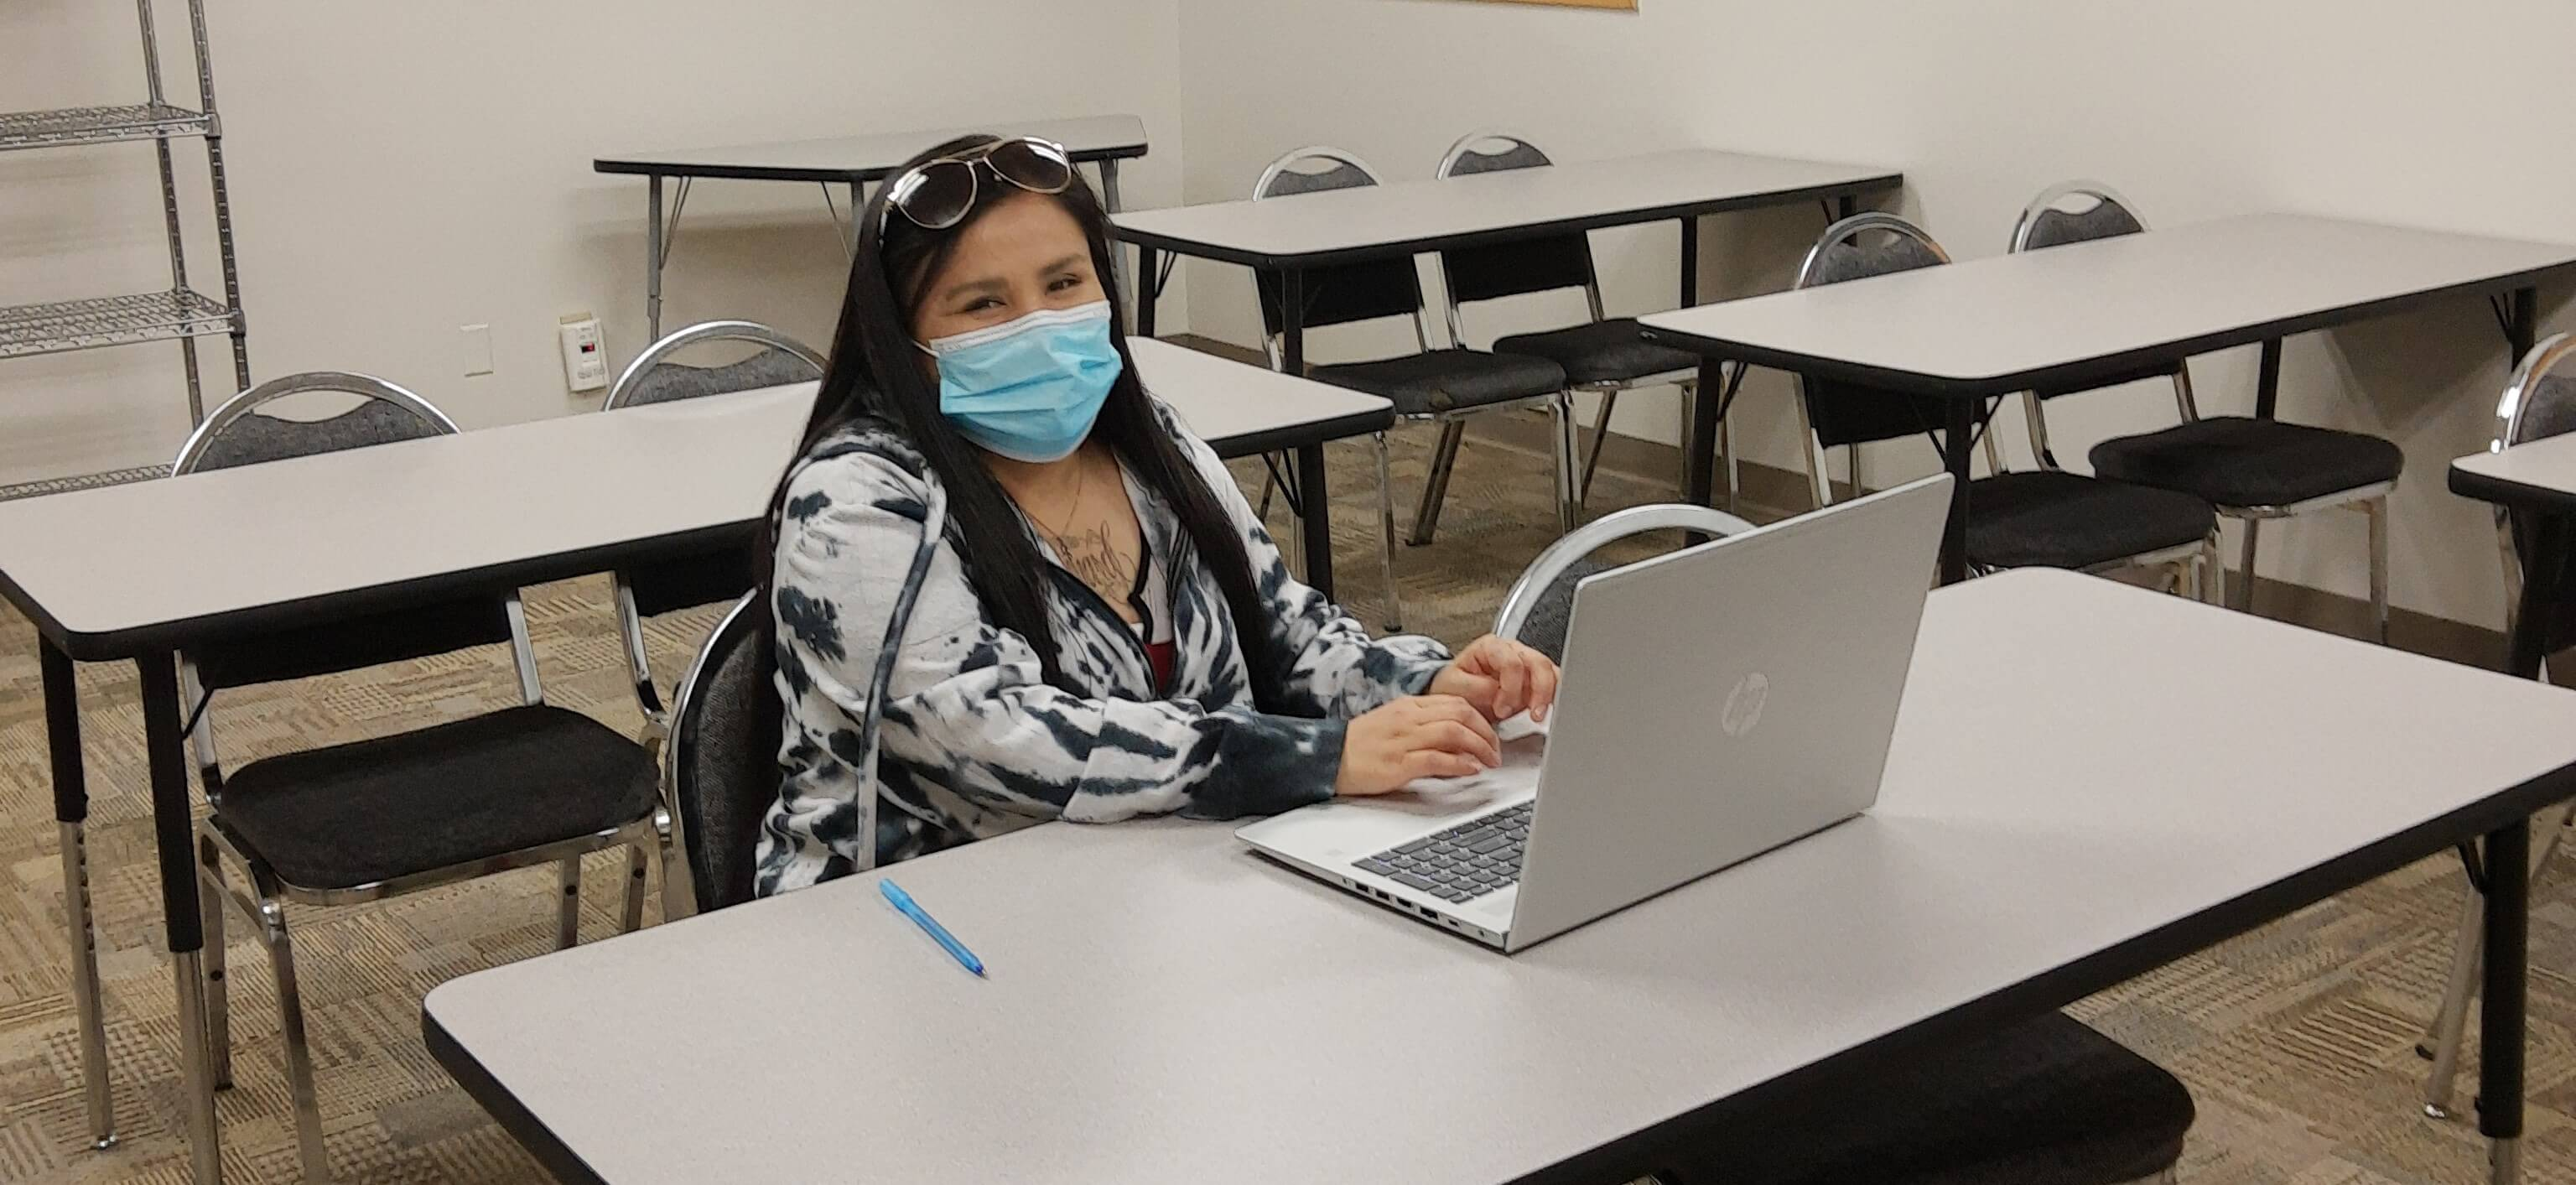 Spring Resurgence: GED classrooms open to students